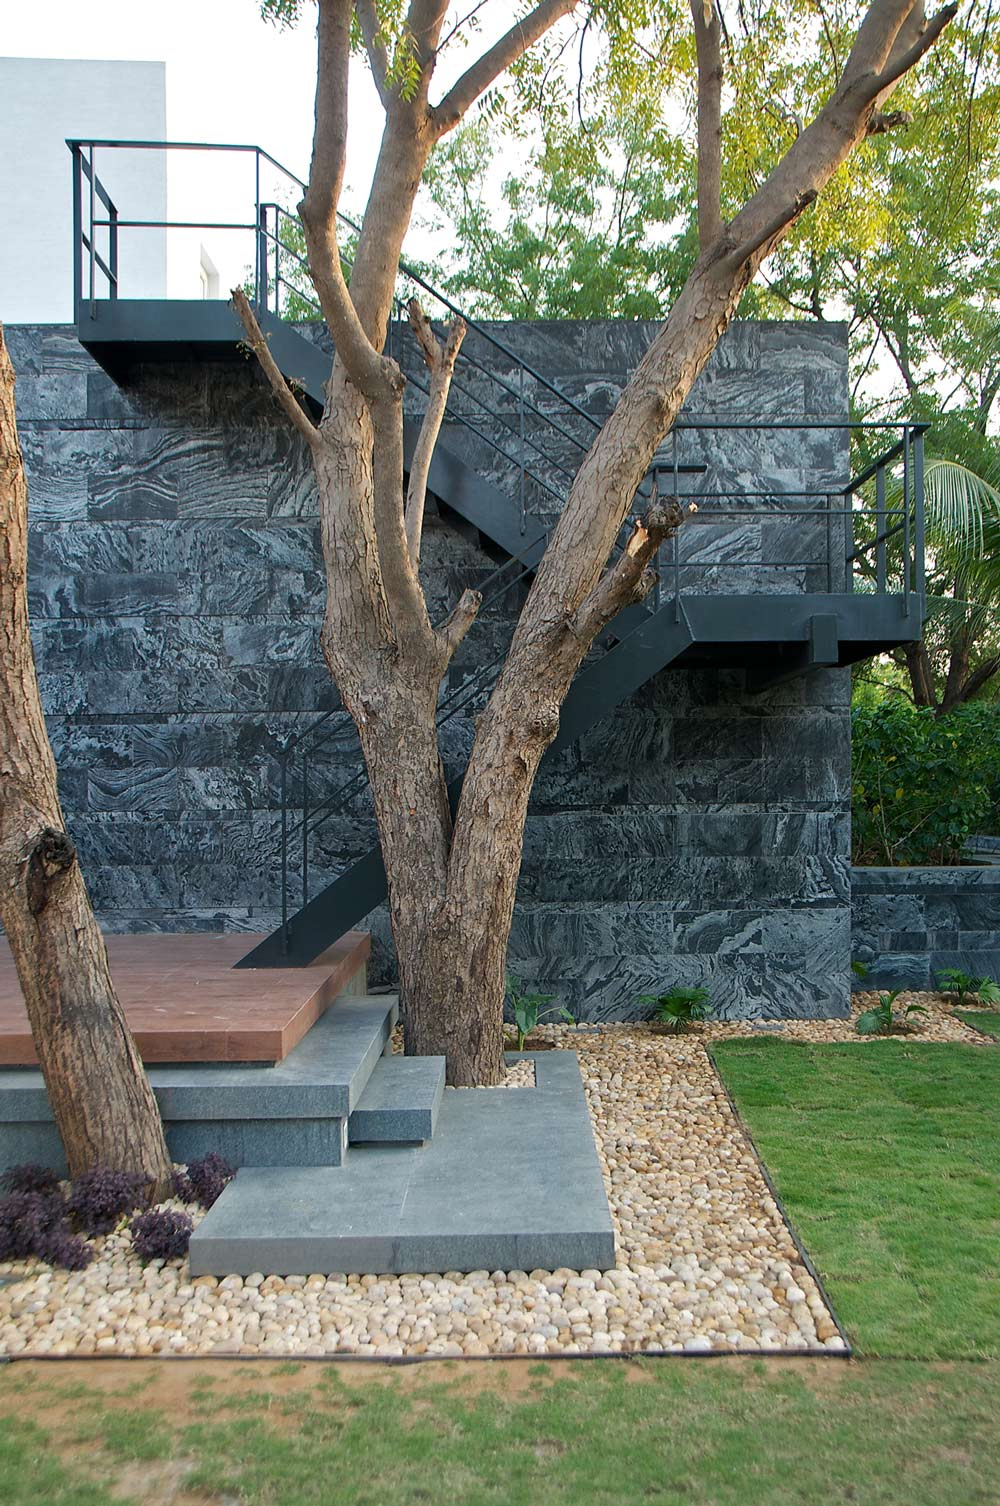 External Stairs, Dinesh Mill Bungalow in Baroda, India by Atelier dnD